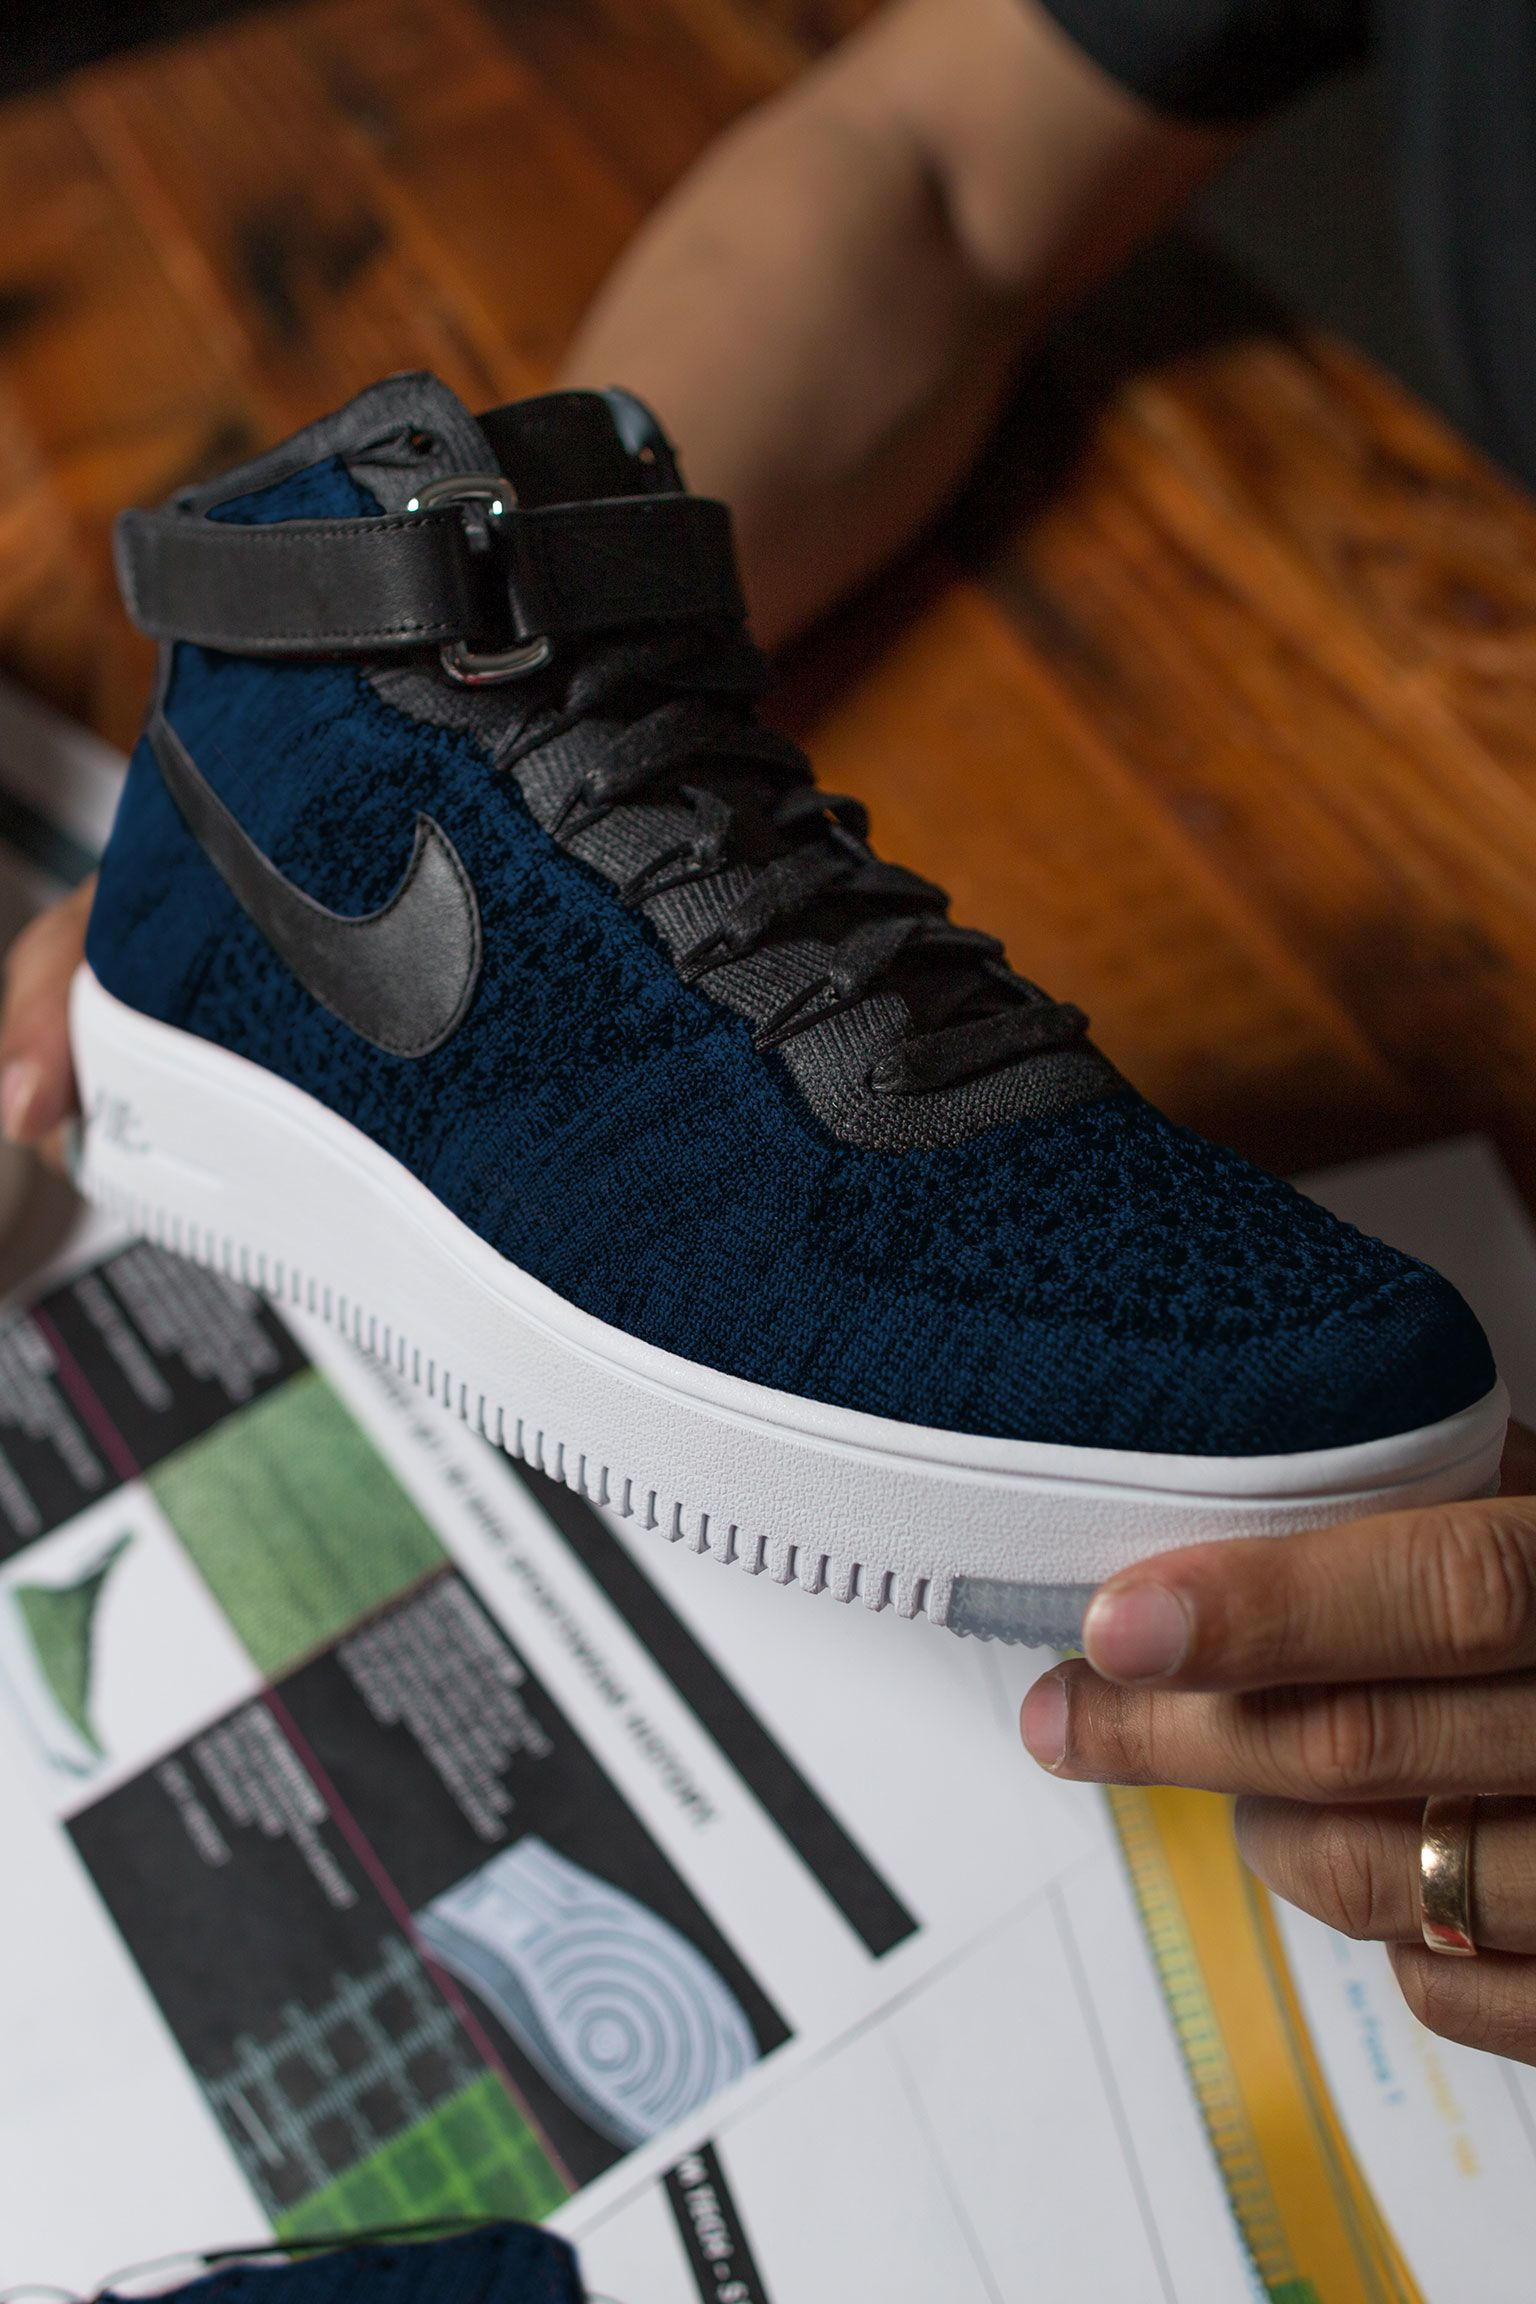 Darrere del disseny: Nike Air Force 1 Ultra Flyknit